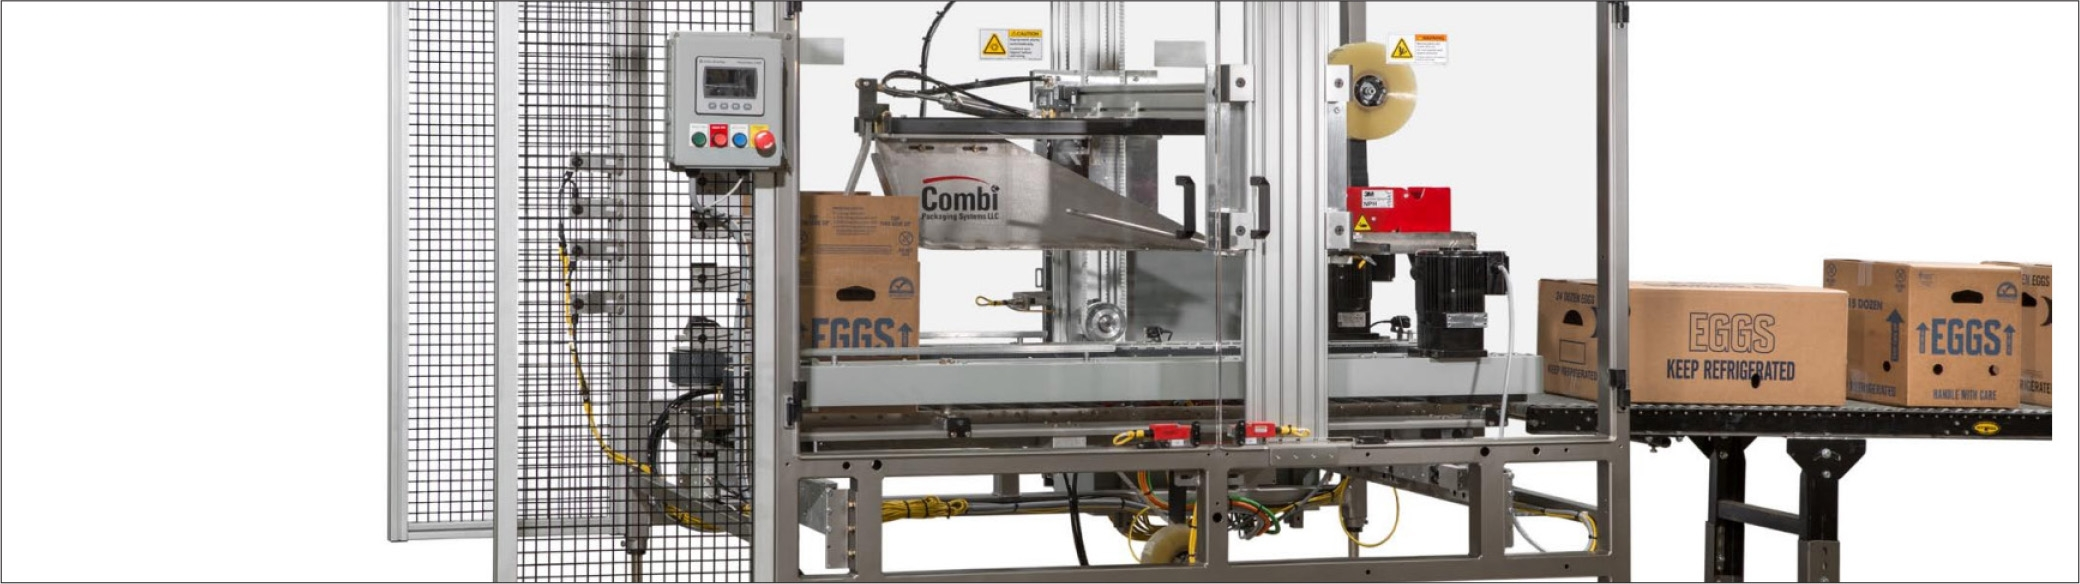 Reducing labor costs - Case Sealing Equipment (Case Study)